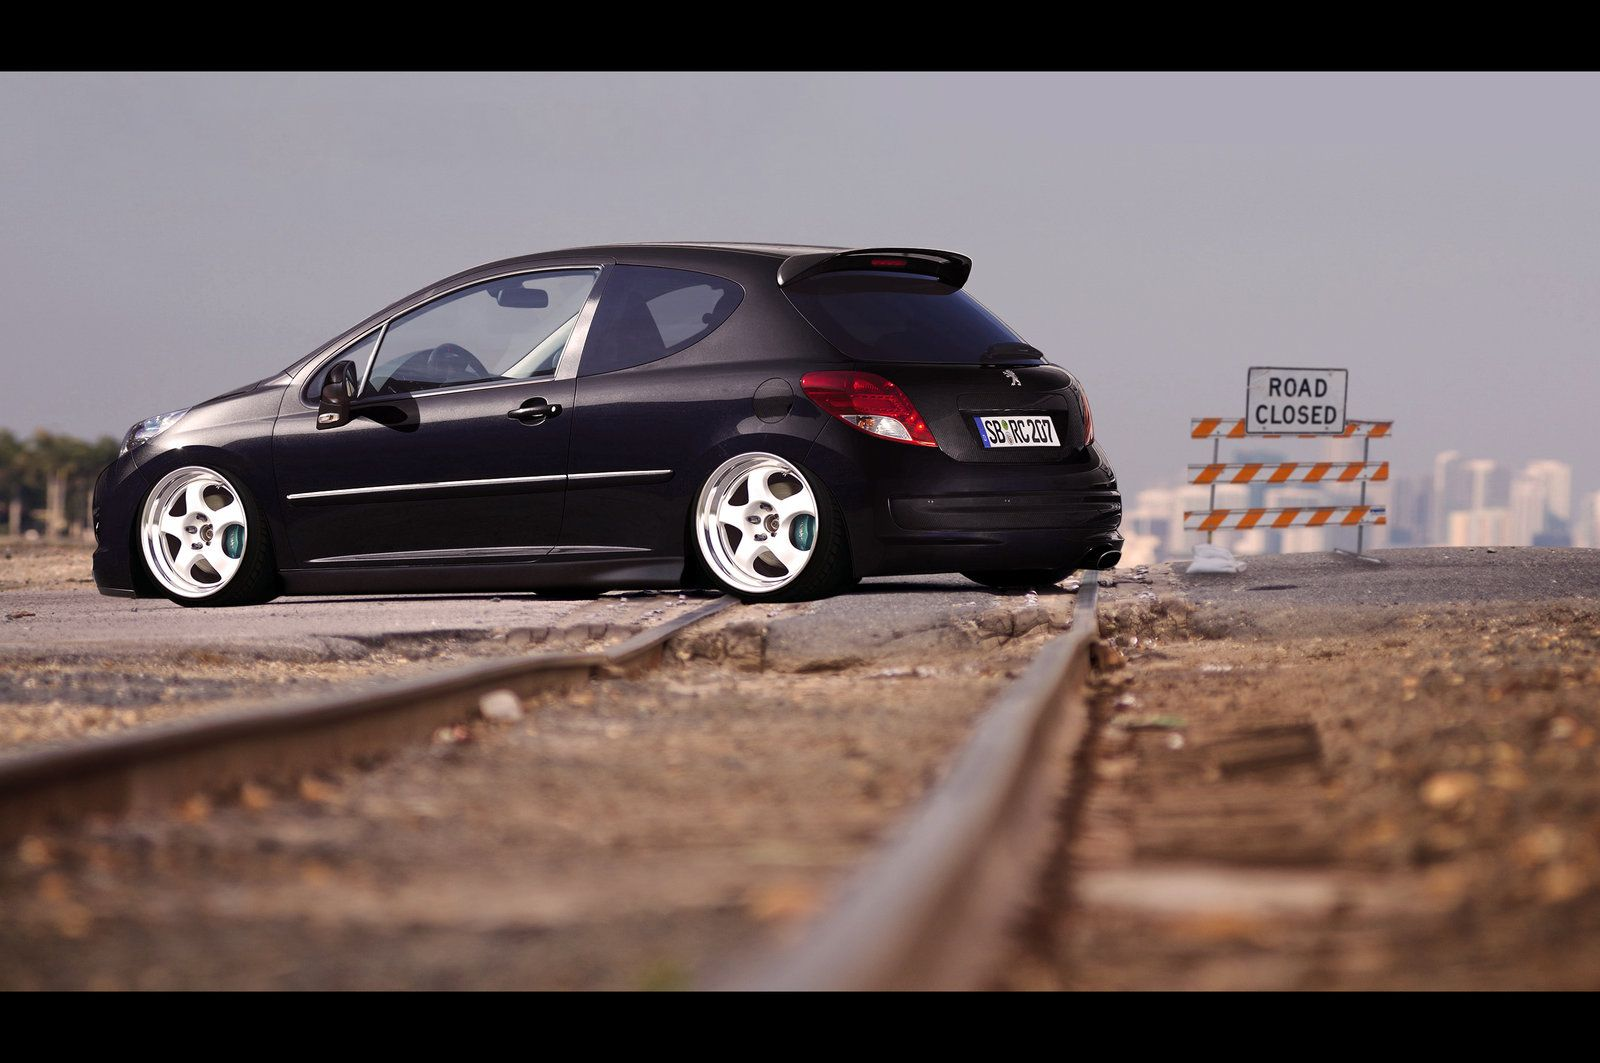 Peugeot 207 Peugeot Hot Hatch Modified Cars